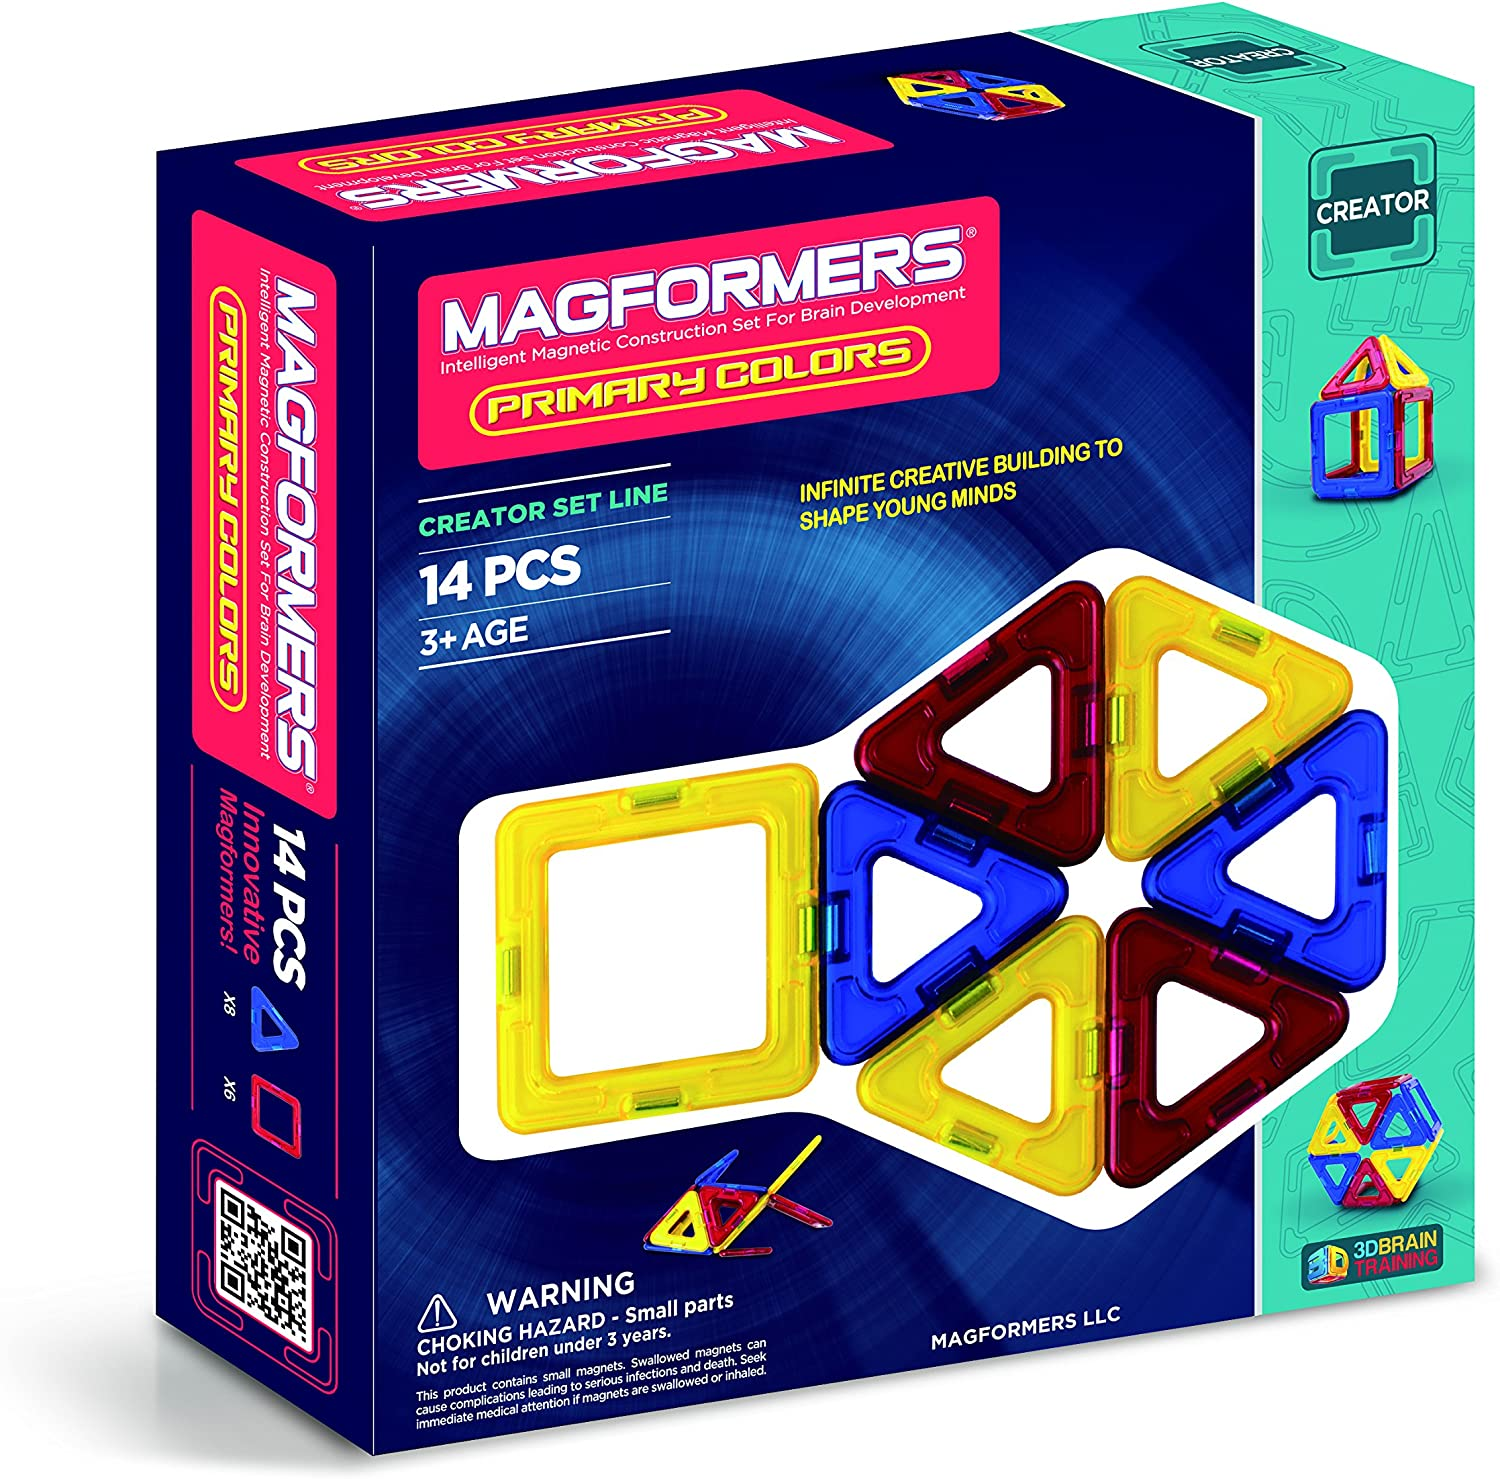 Sale price Magformers Creator Primary Colors Ranking TOP8 Build Set Magnetic 14-Pieces